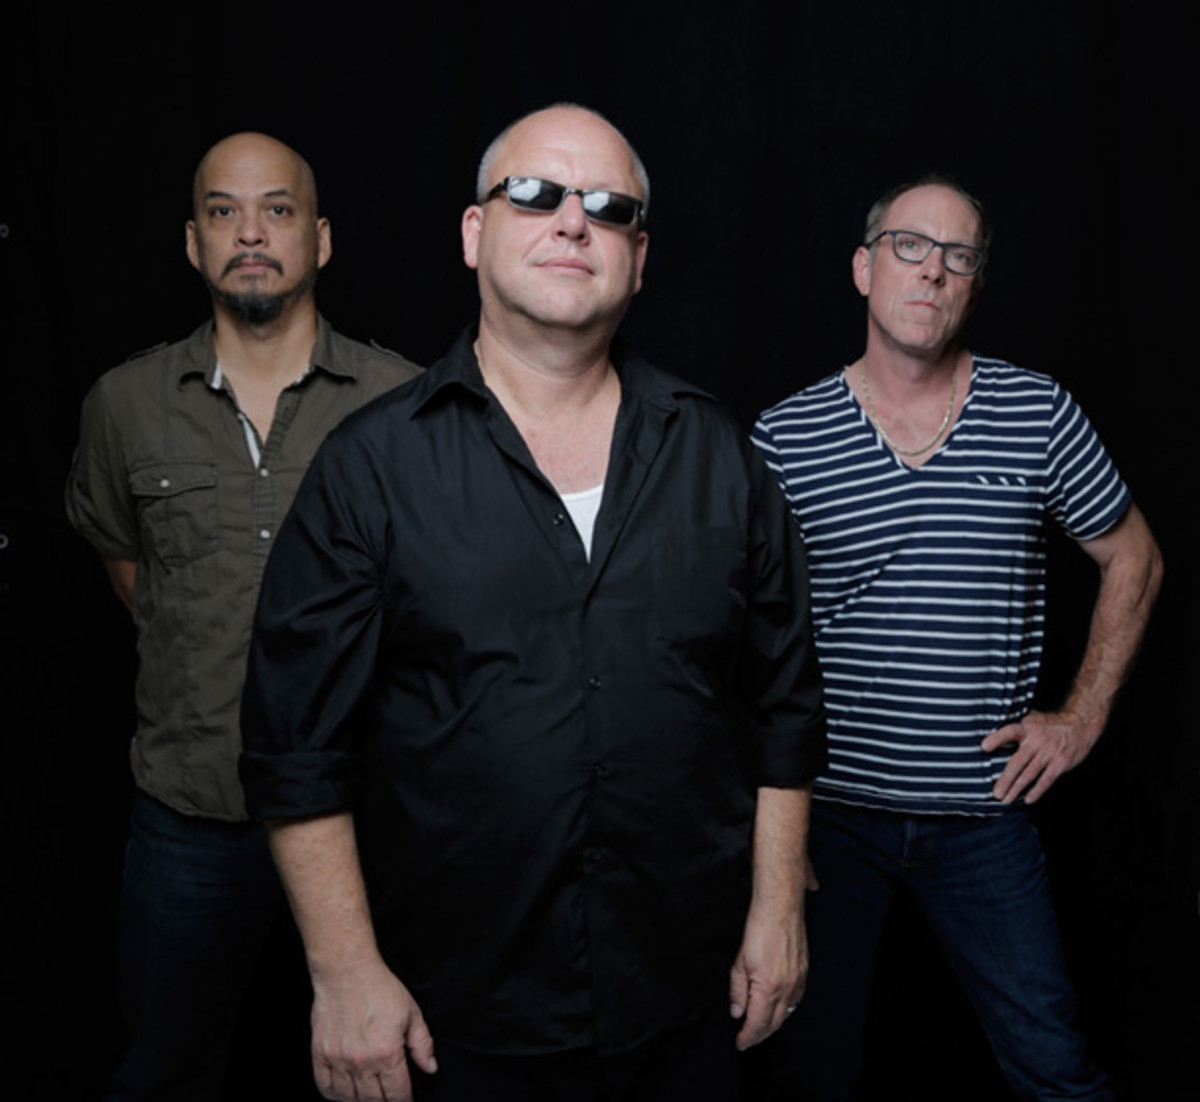 The Pixies (from left) Joey Santiago, Black Francis and David Lovering. Photo credit: Michael Halsband.